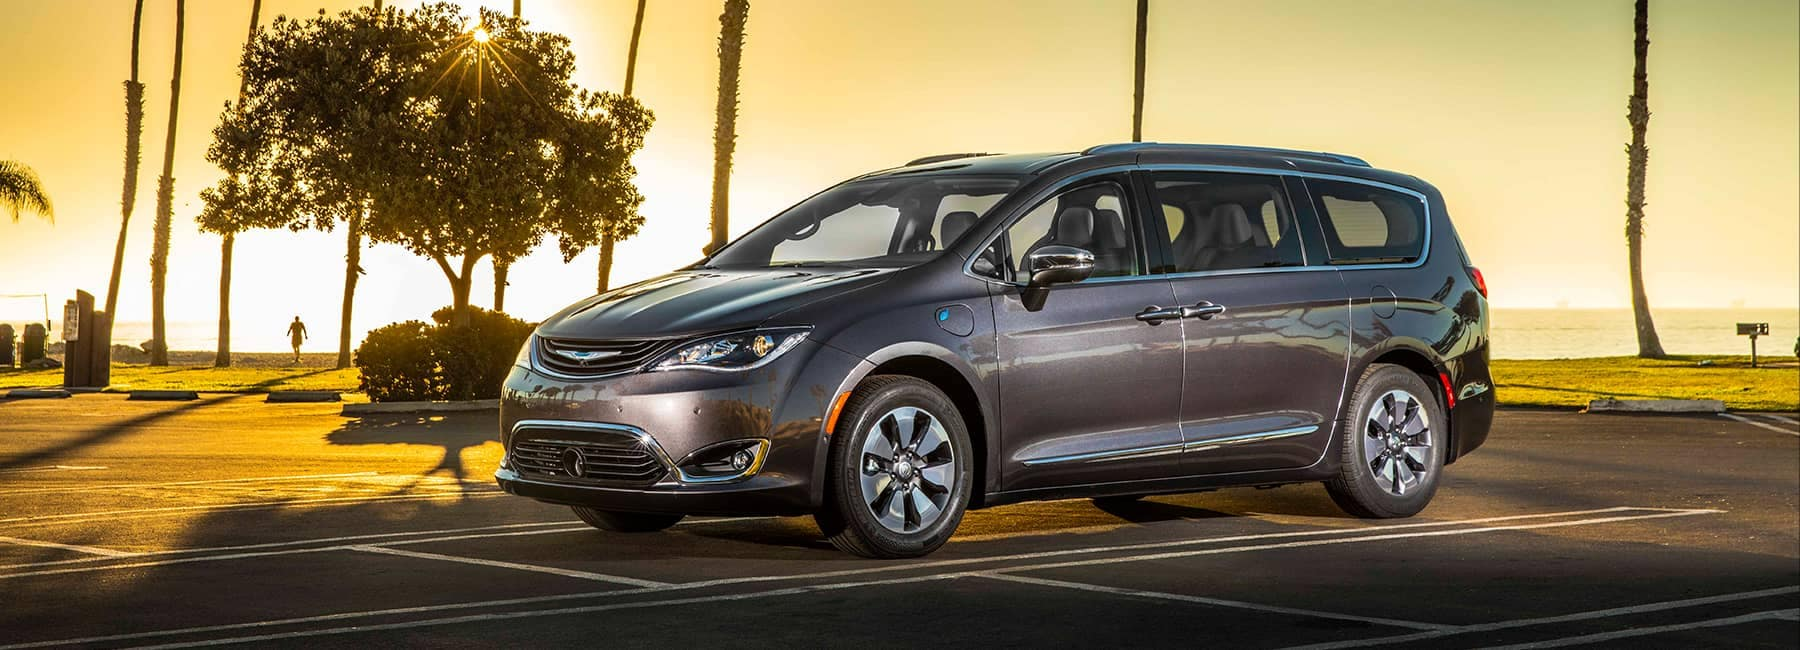 2018-Chrysler-Pacifica-2